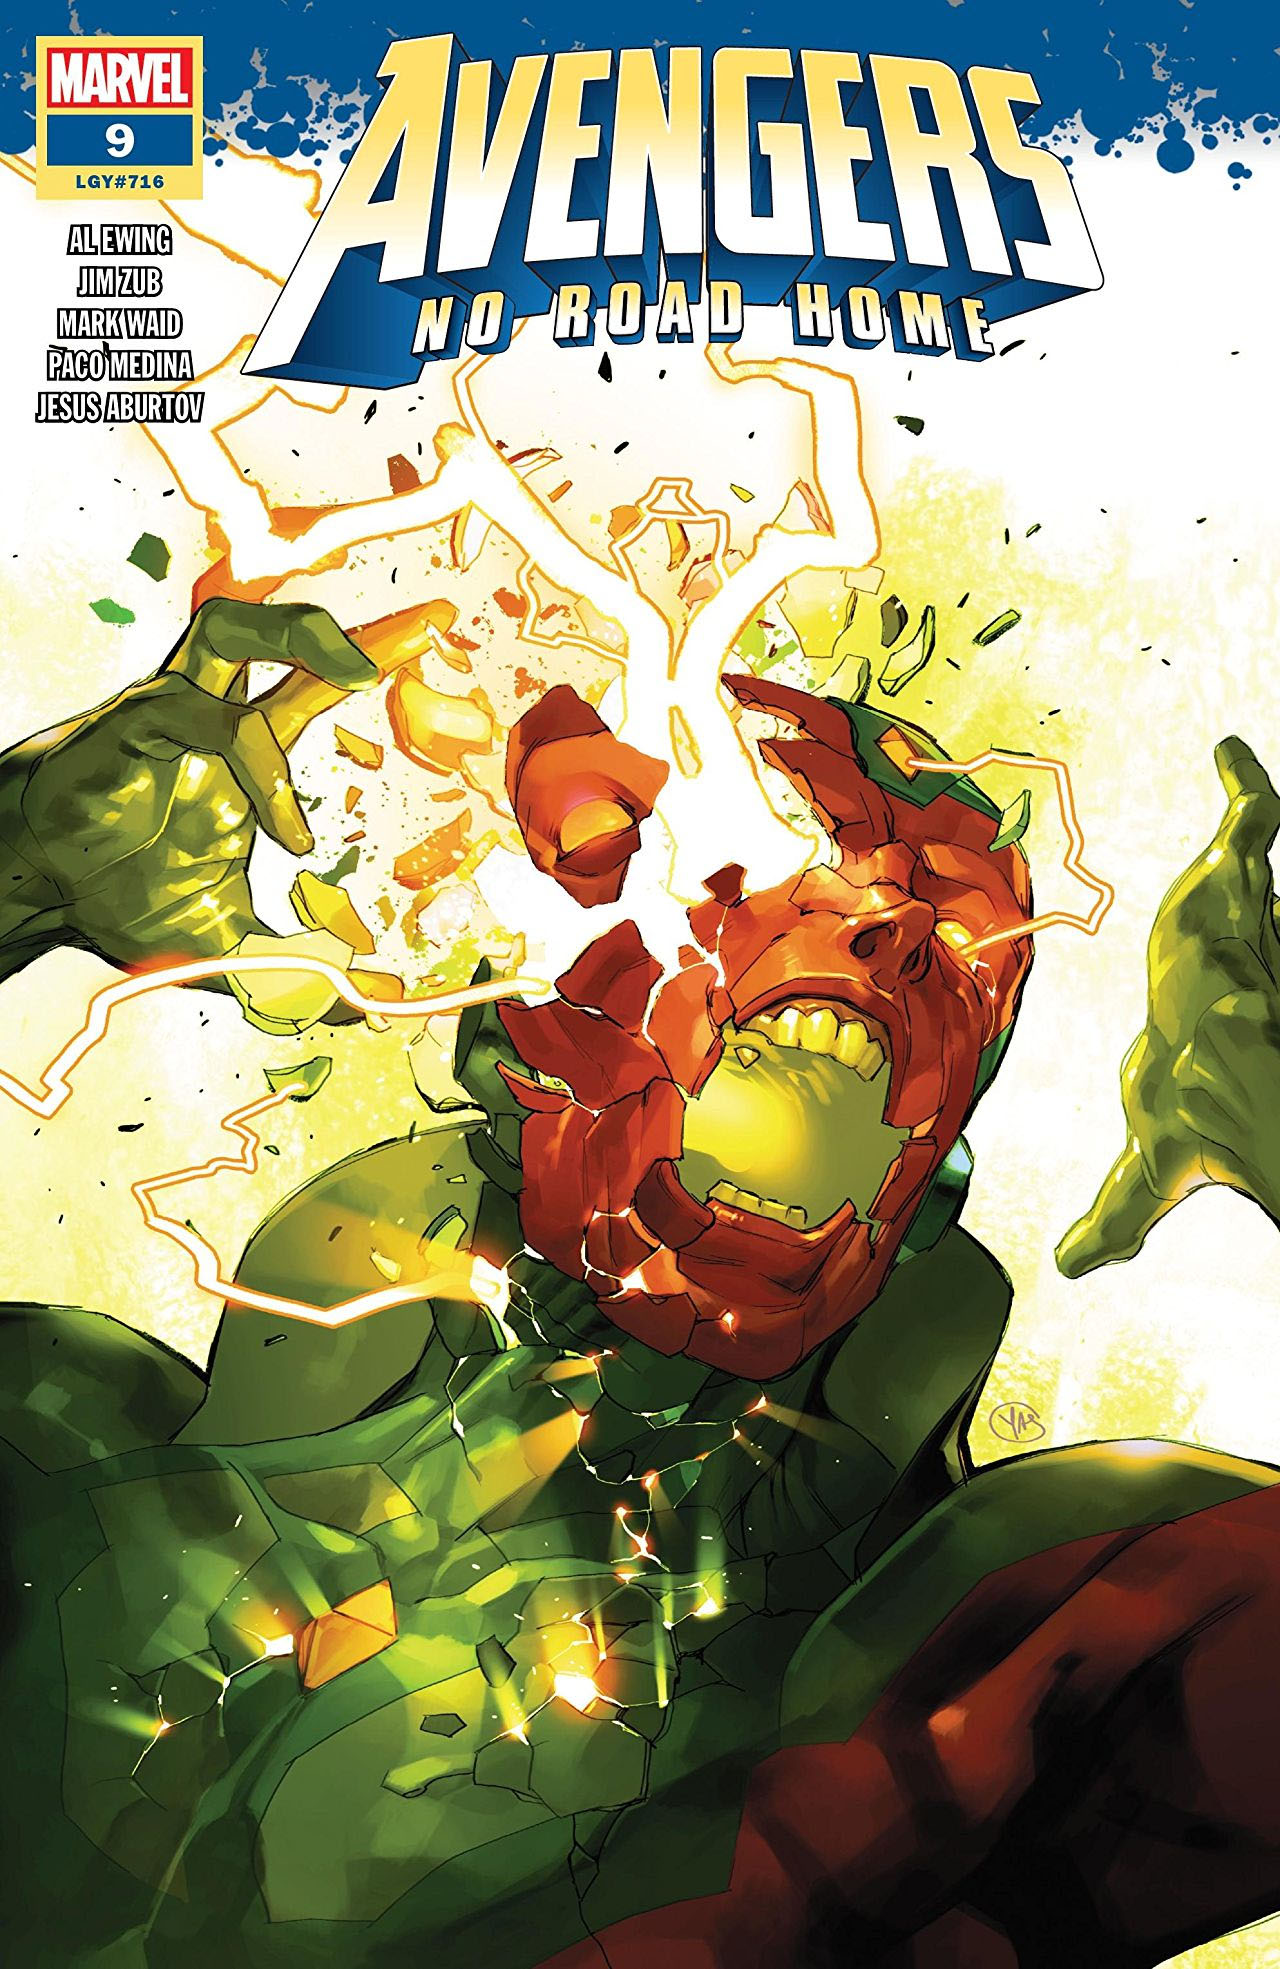 Avengers: No Road Home #9 cover